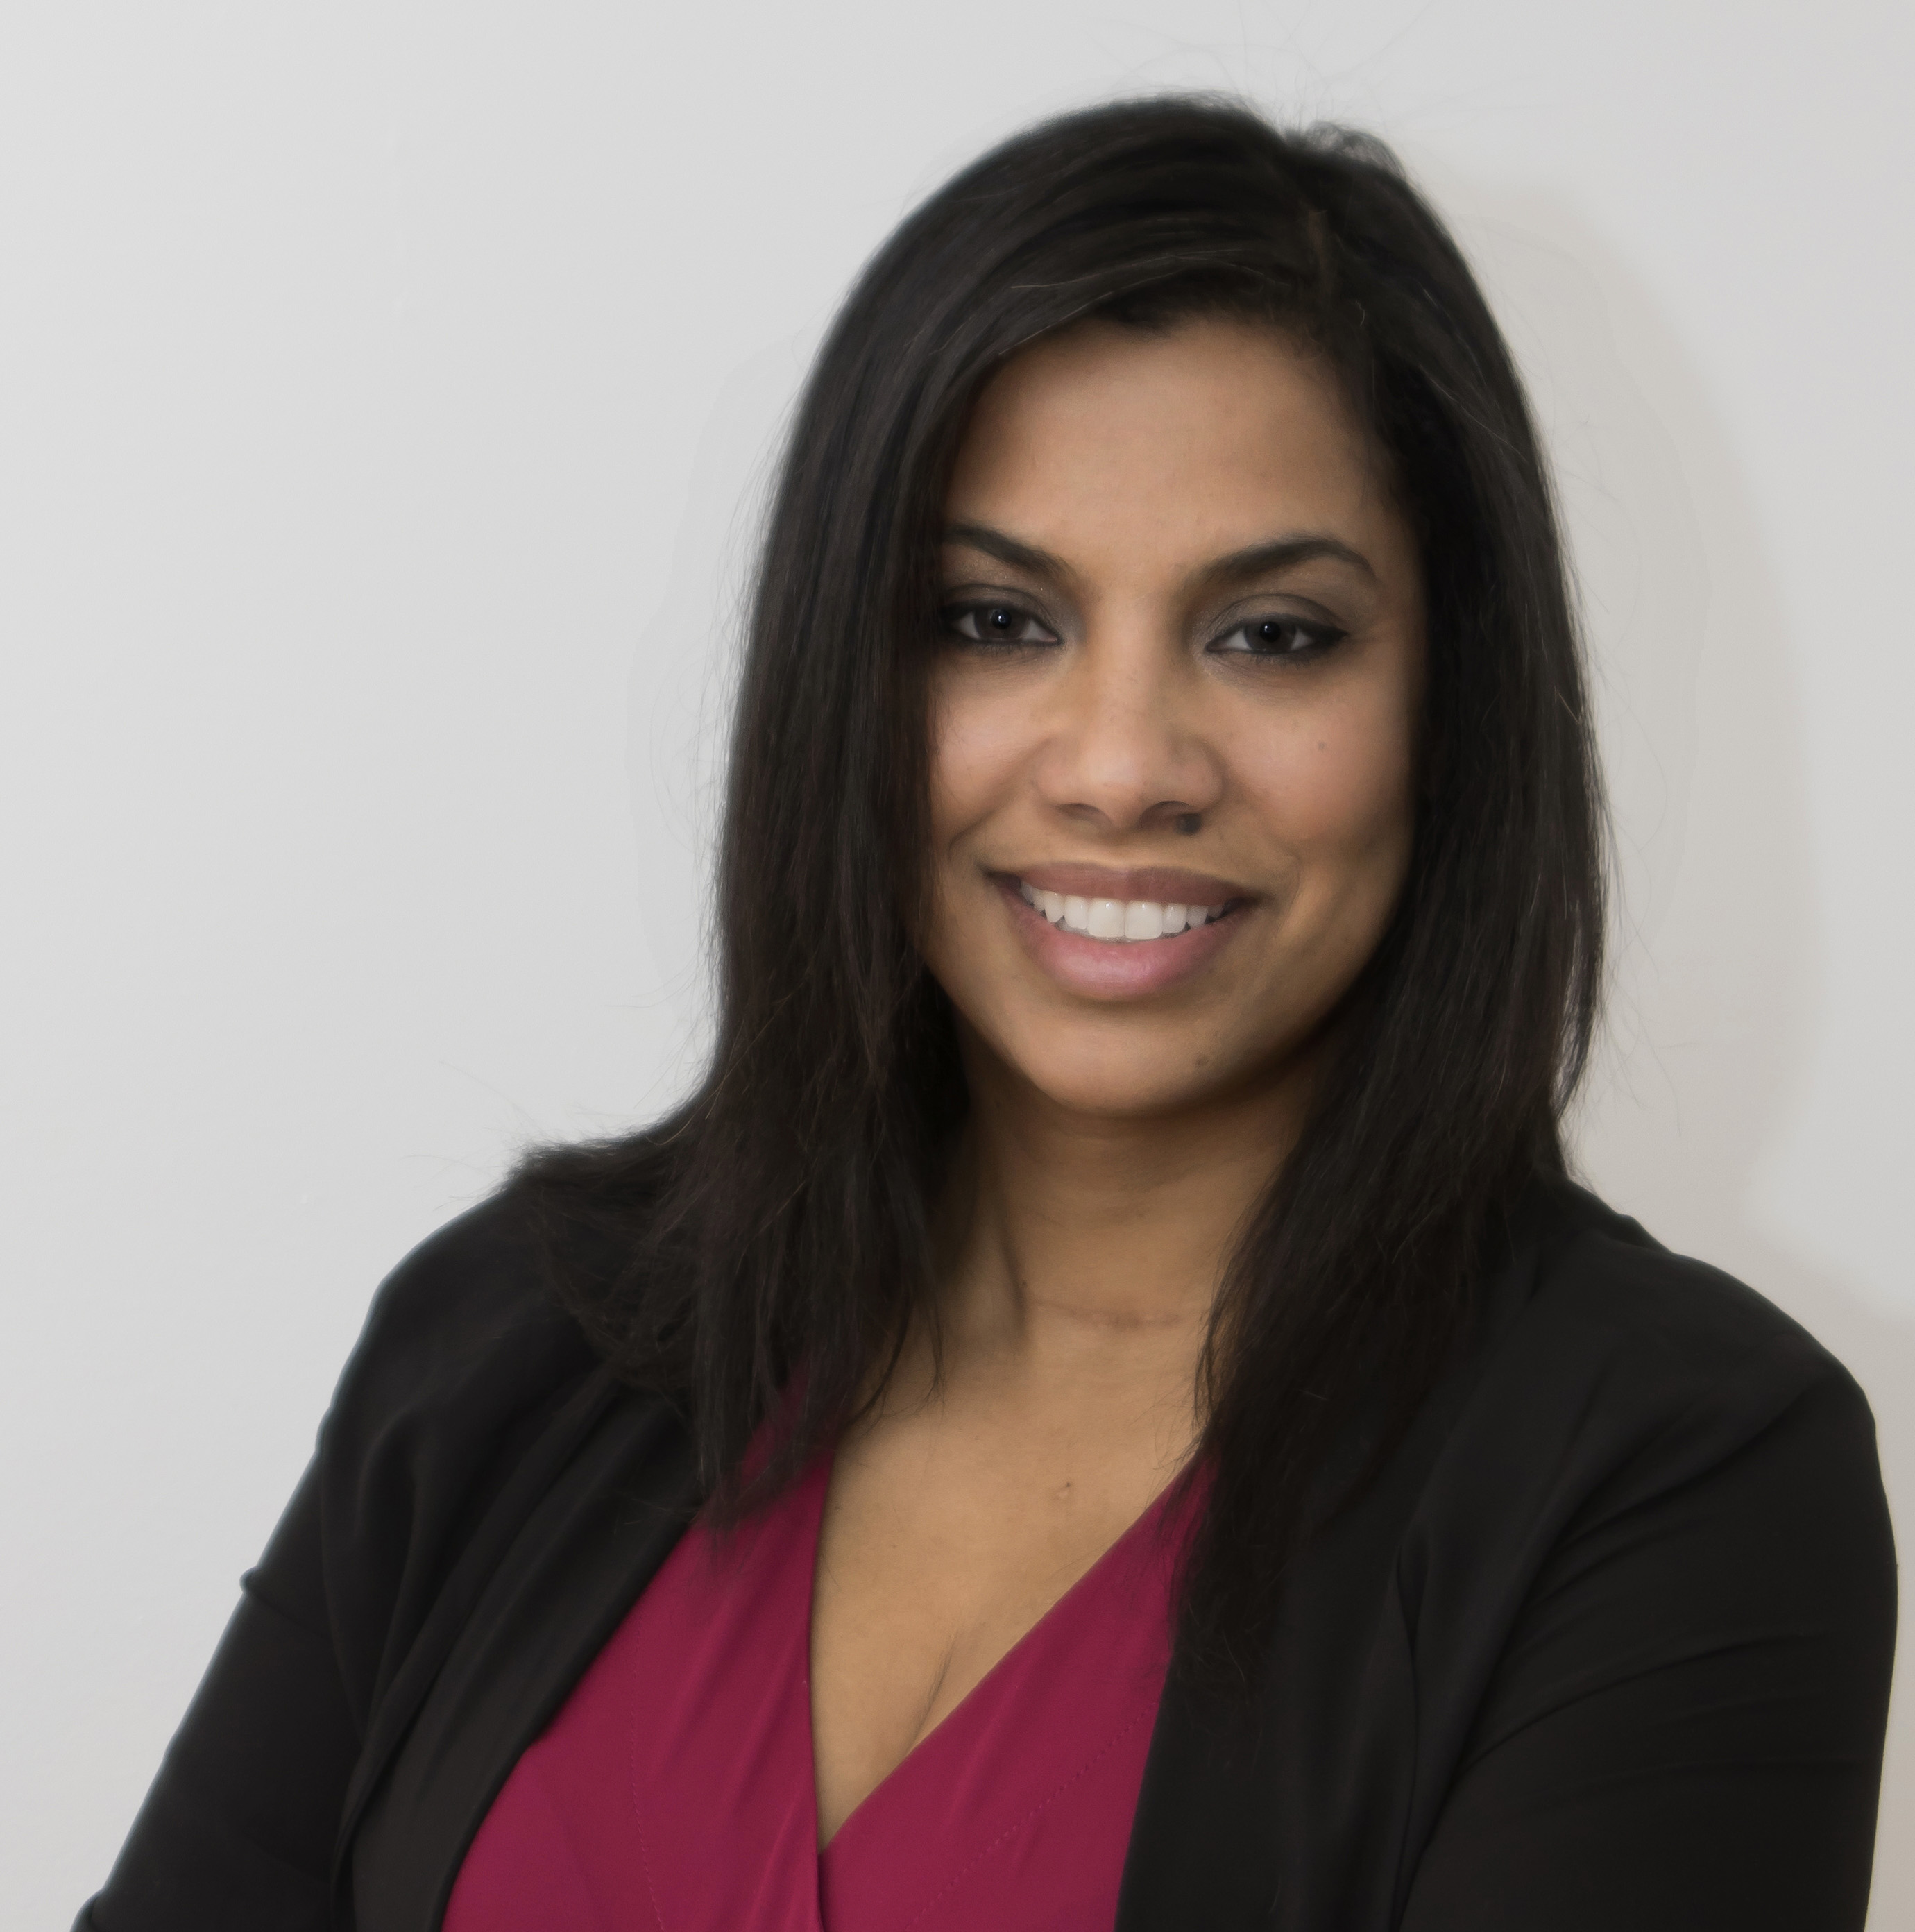 washburn online dating Interested in hiring a dating and relationship industry leader arlene vasquez washburn is a master executive certified matchmaker and relationship expert.